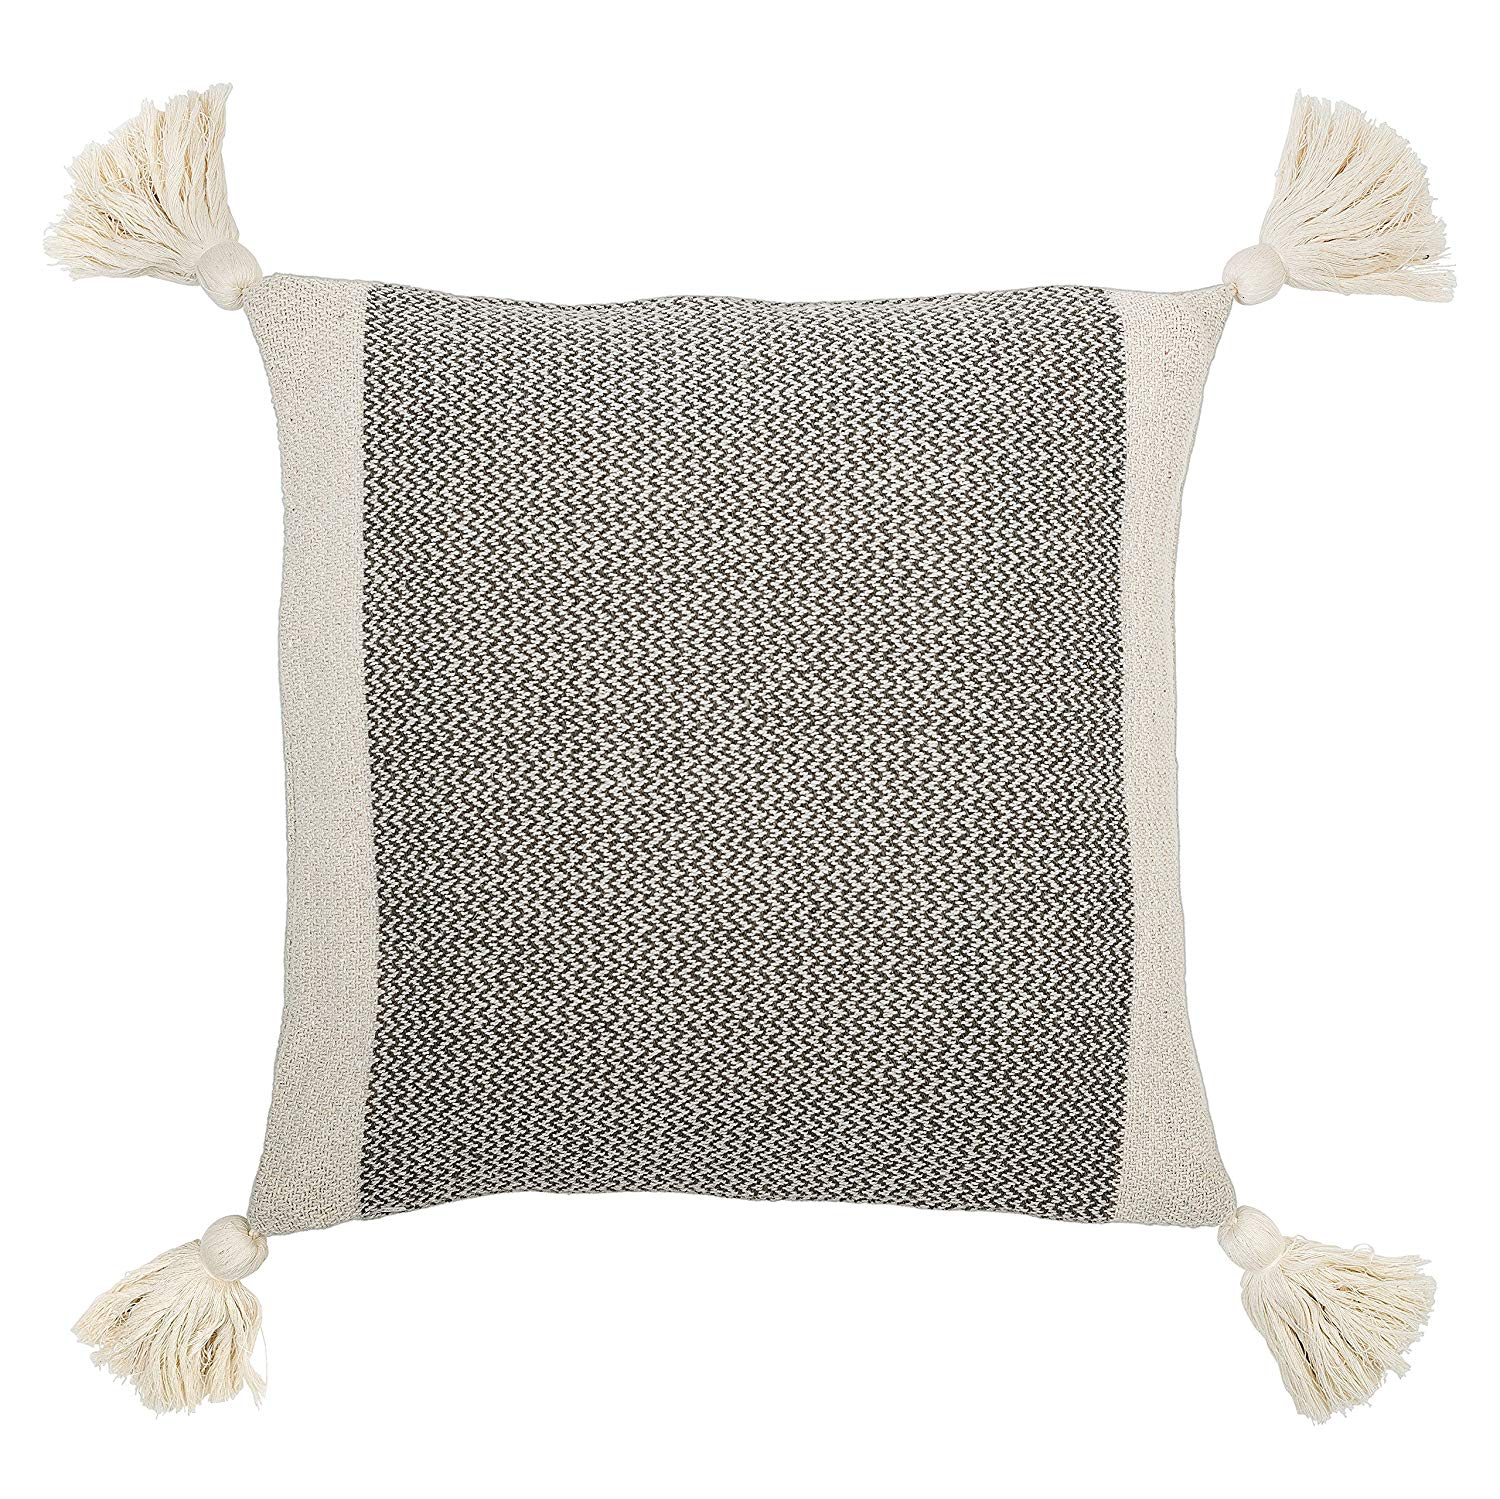 Bloomingville Grey Square Cotton Blend Pillow. Courtesy of Amazon.